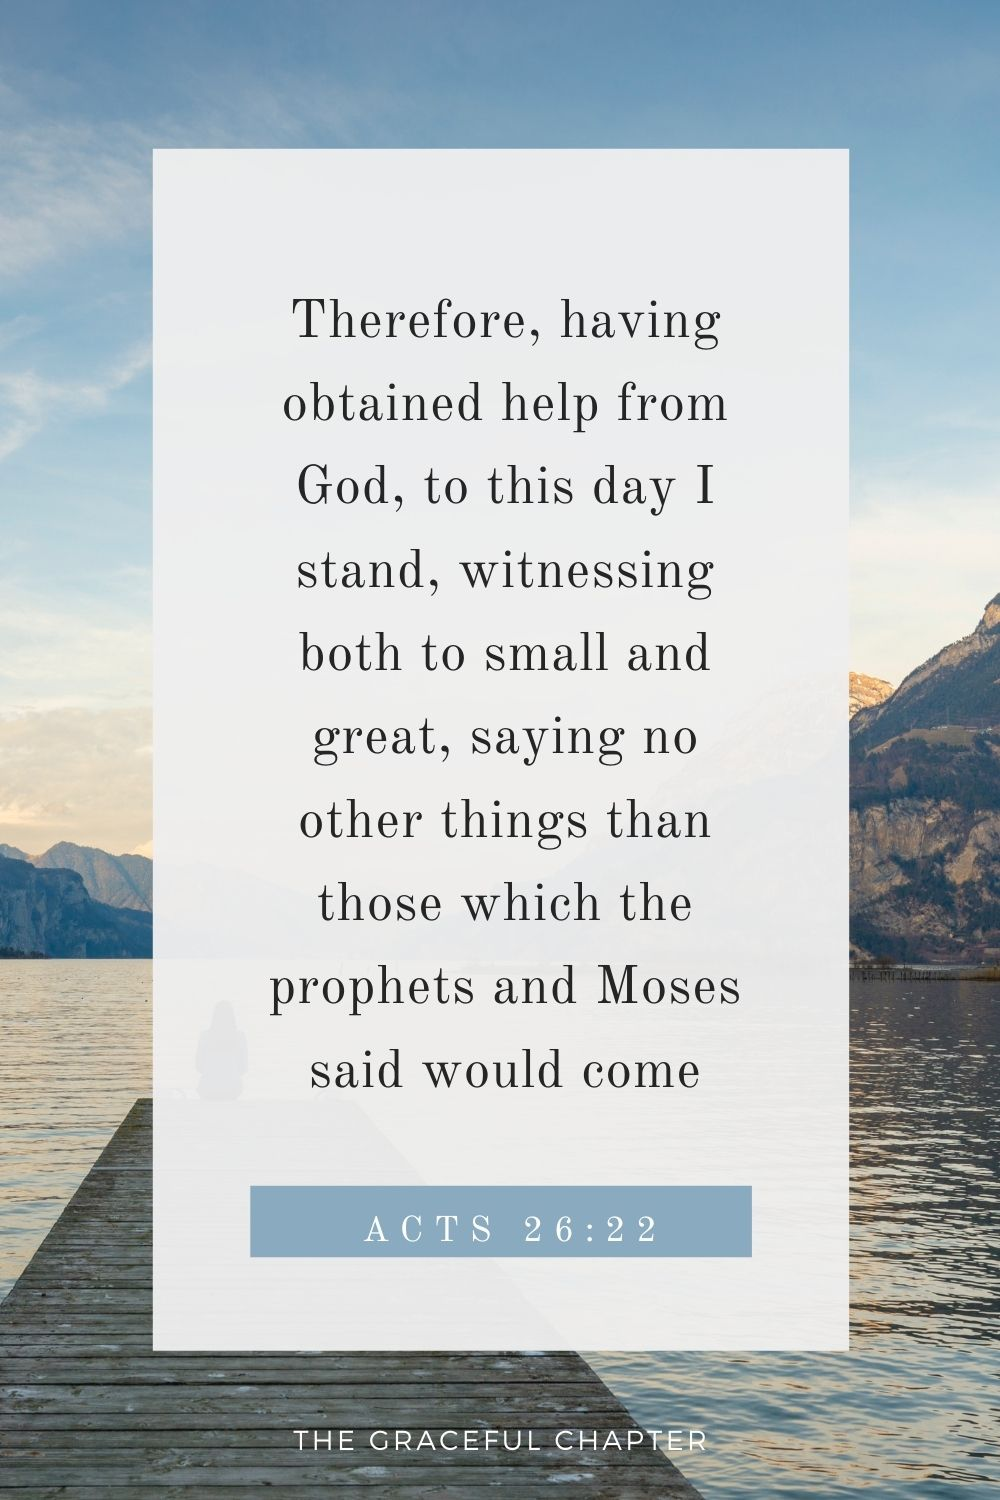 Therefore, having obtained help from God, to this day I stand, witnessing both to small and great, saying no other things than those which the prophets and Moses said would come Acts 26:22